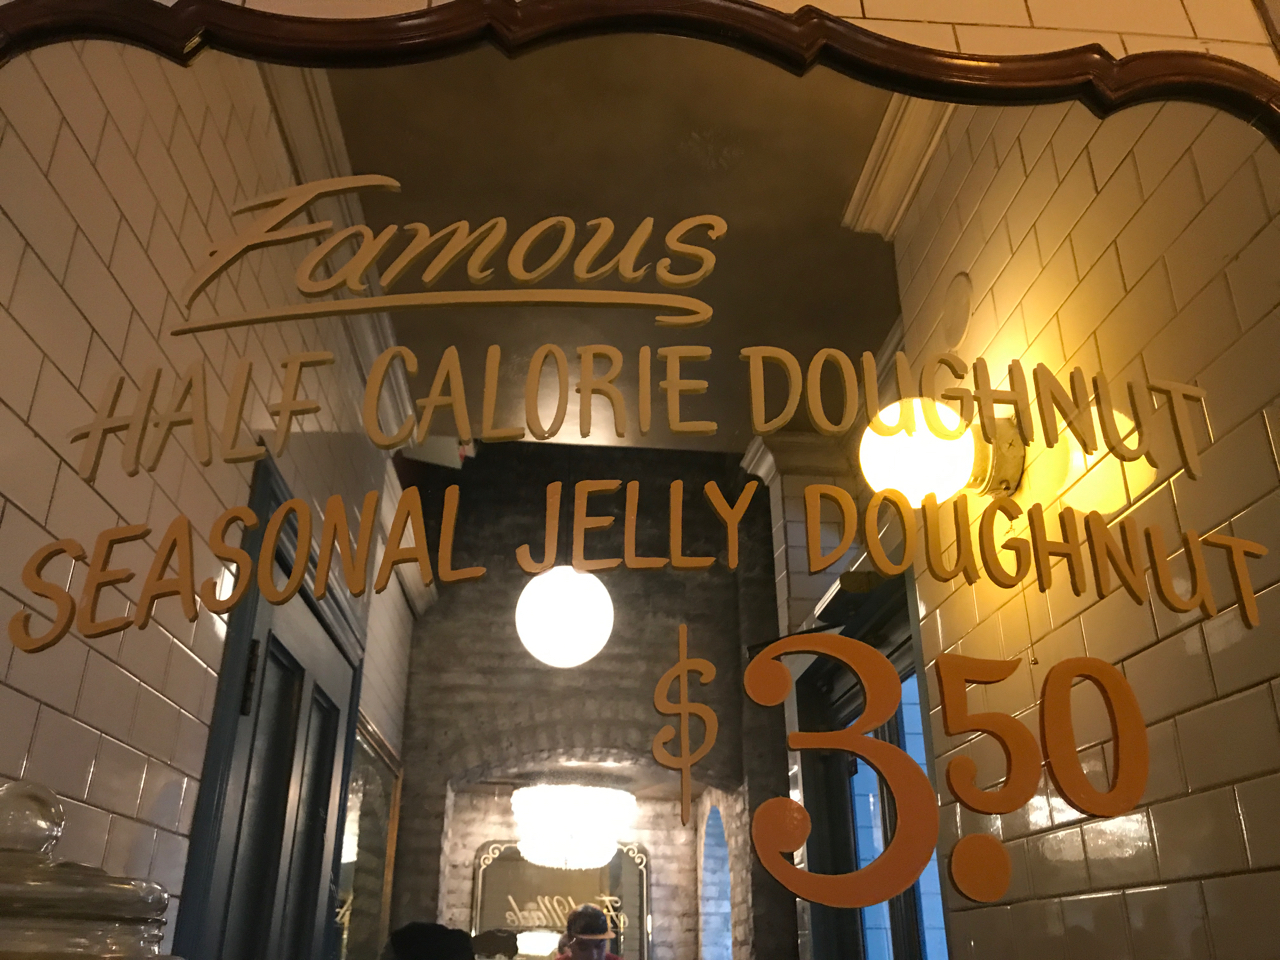 """A photo of a mirrored sign inside of the Doughnut Vault shop in Chicago, Illinois that says, """"Famous Half Calorie Doughnut Seasonal Jelly Doughnut $3.50."""""""